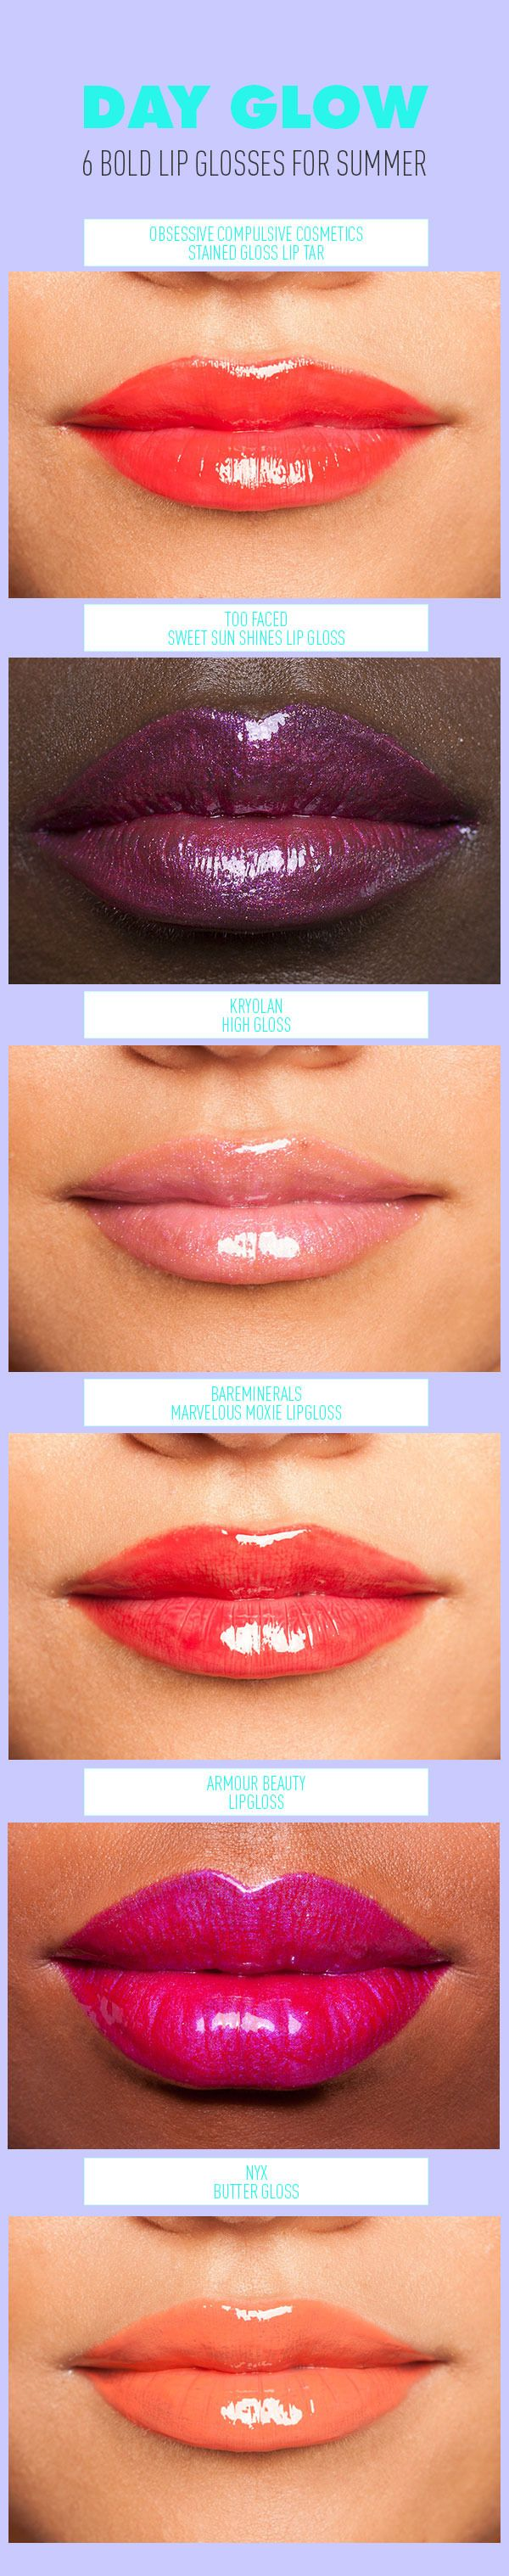 Day Glow! Six Bold Lip Glosses For Summer